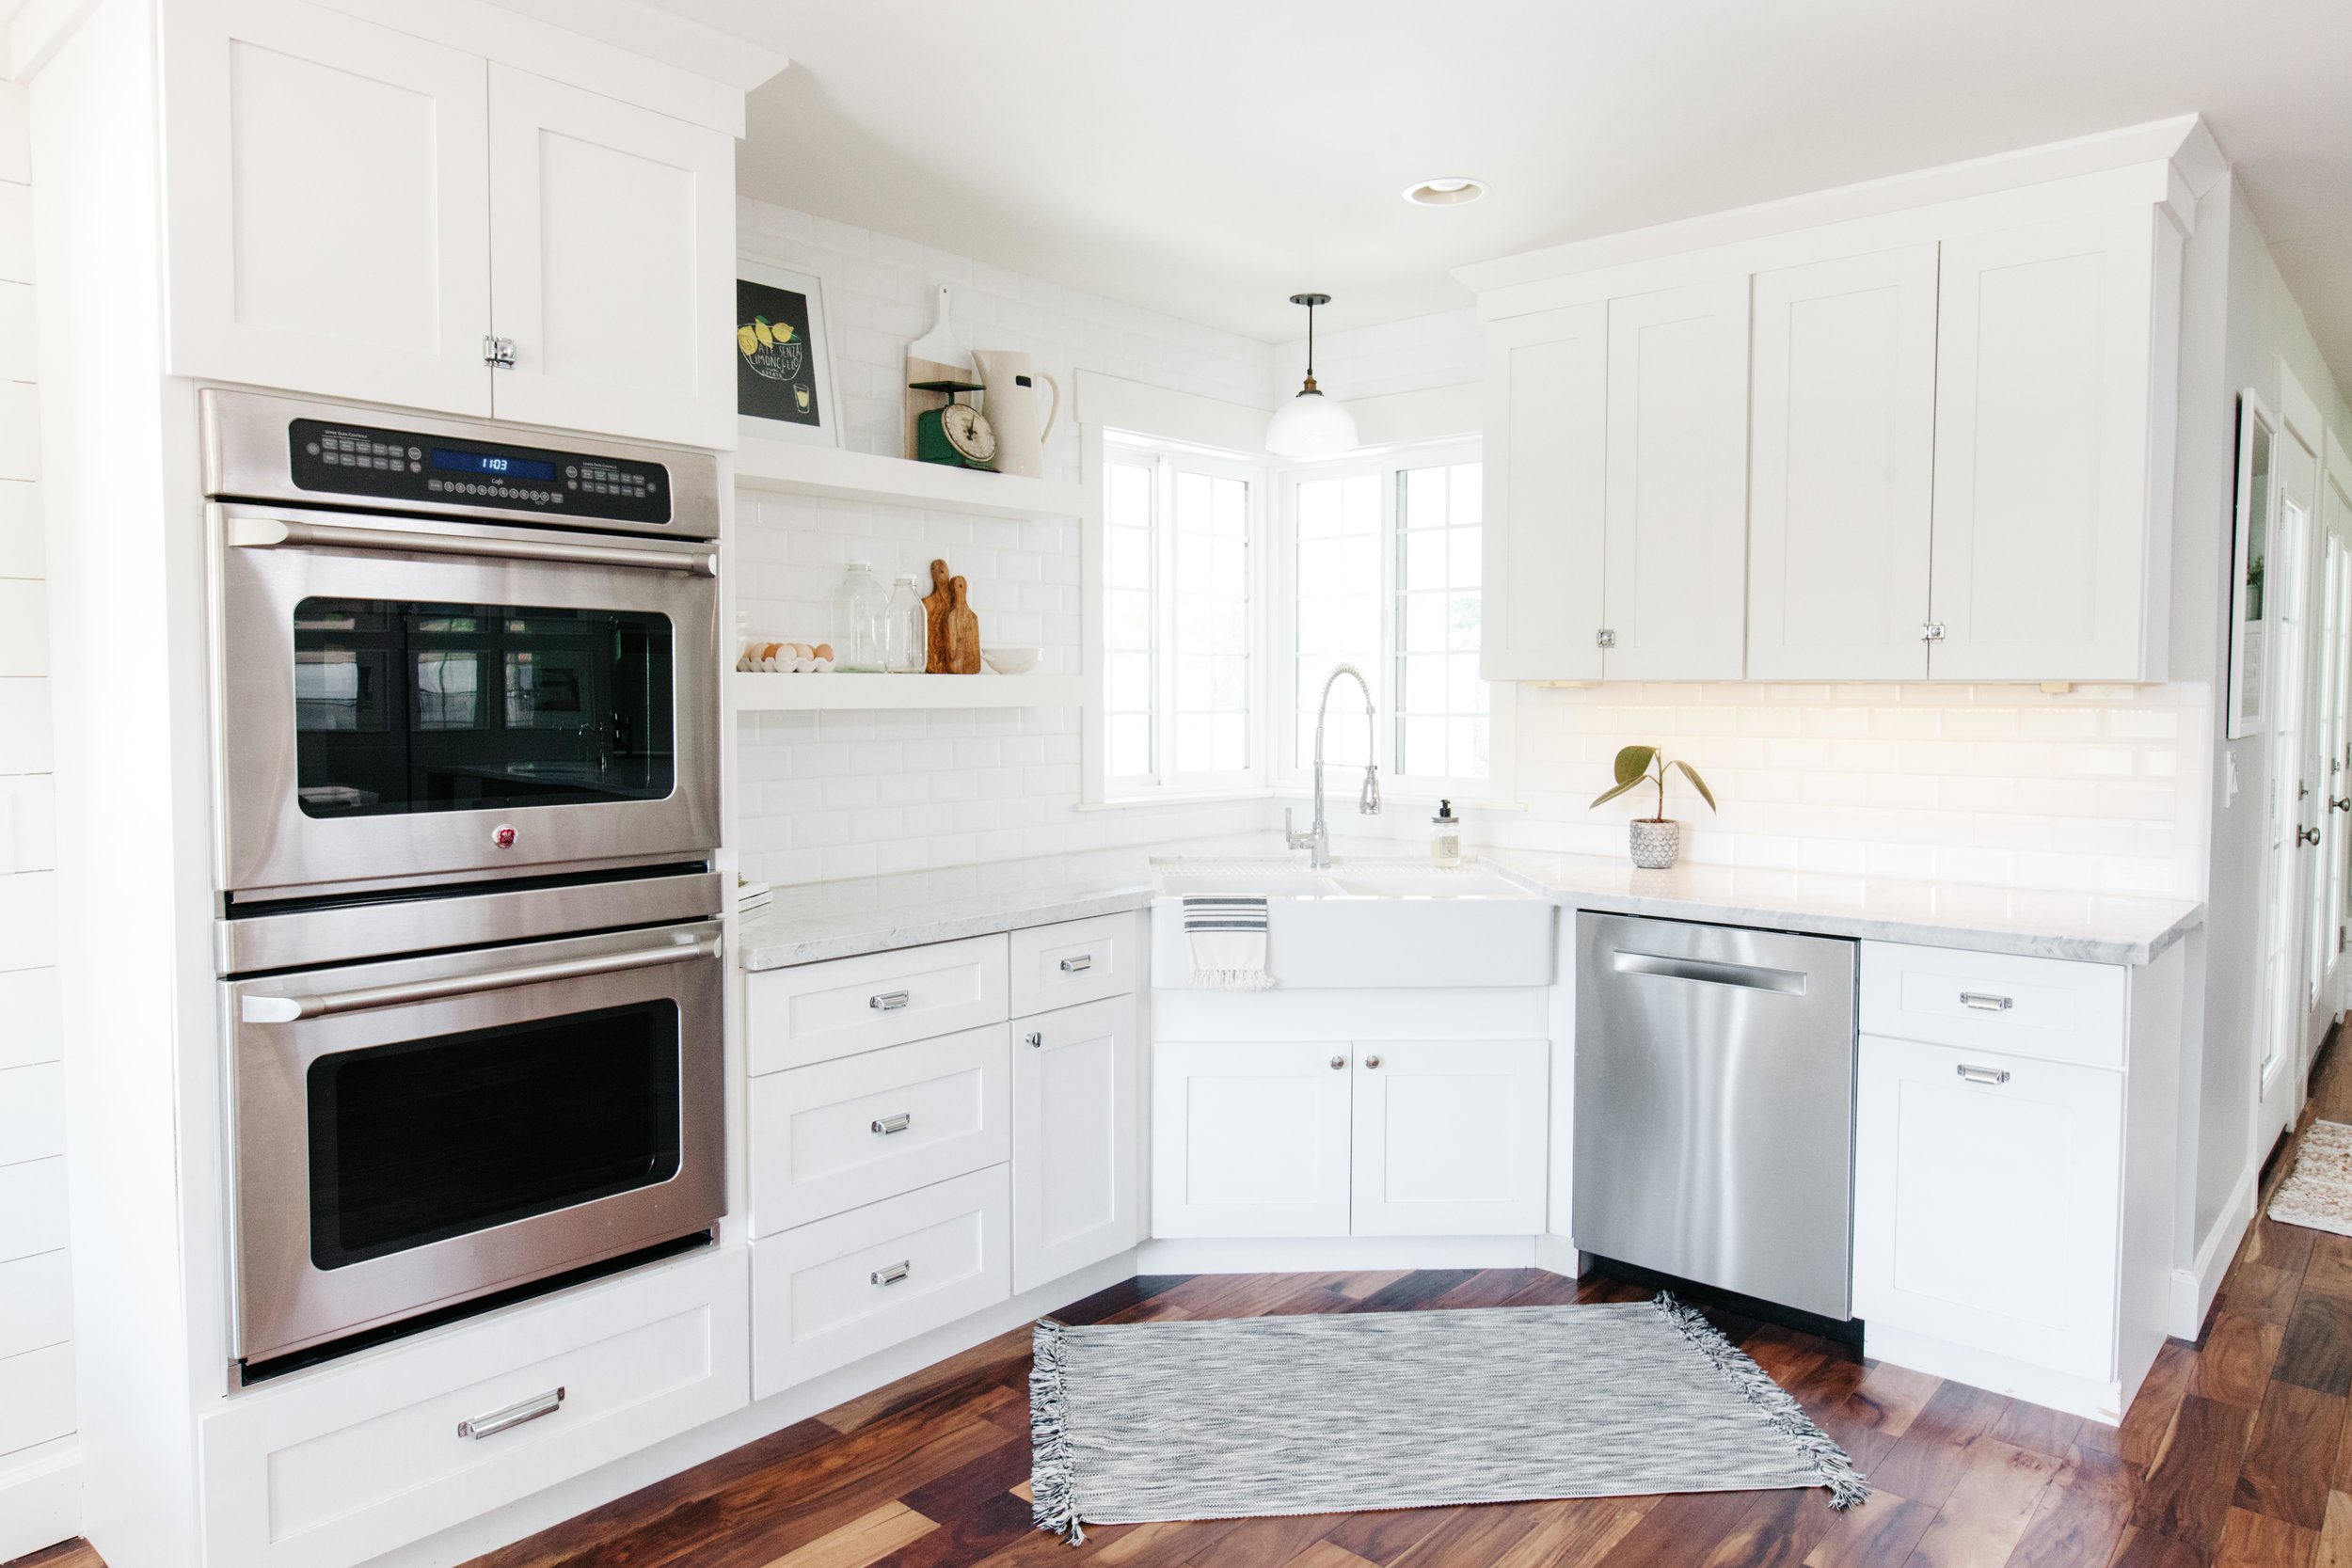 kitchen before and after .JPG